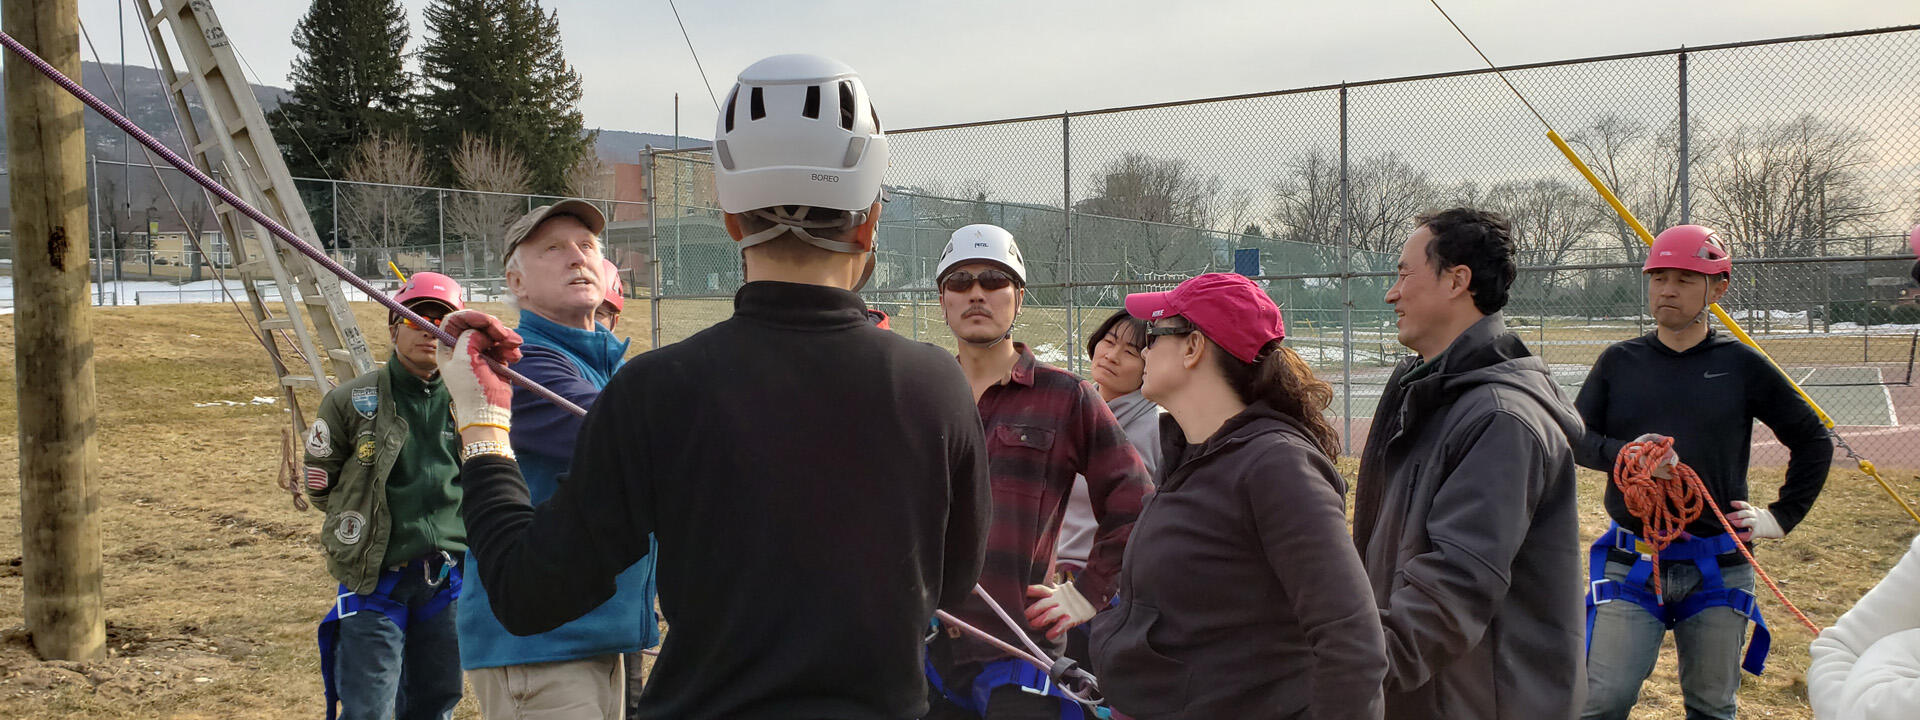 People in harnesses at ropes course